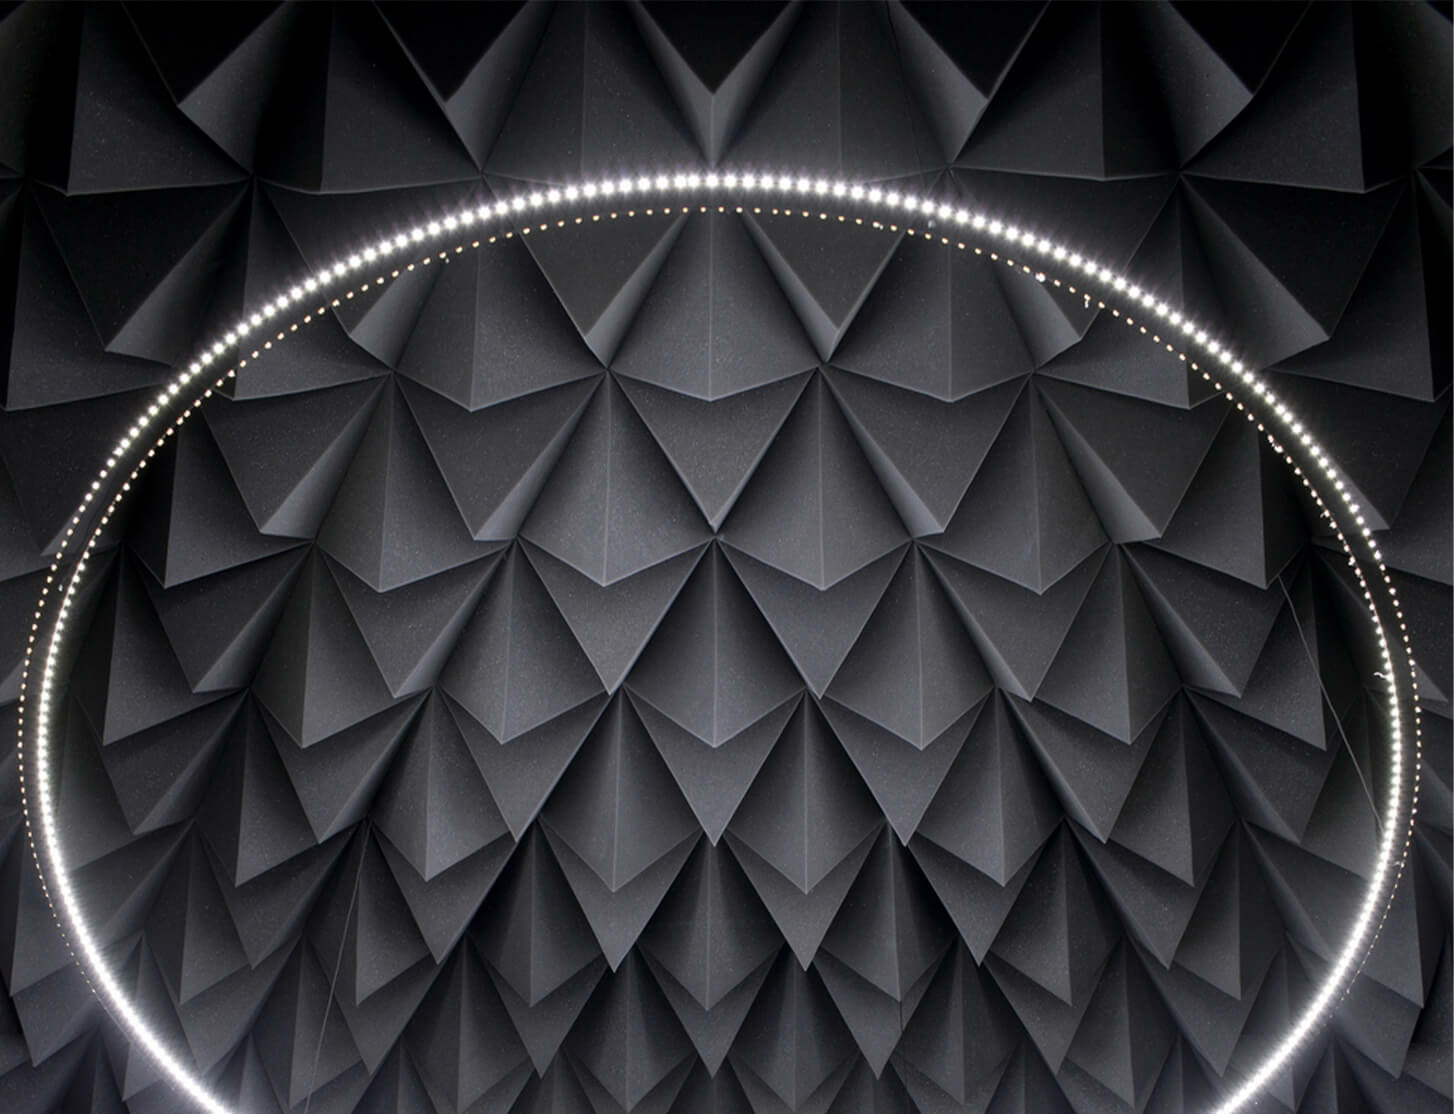 Haroon Mirza's largest exhibition to date opens at Ikon Gallery